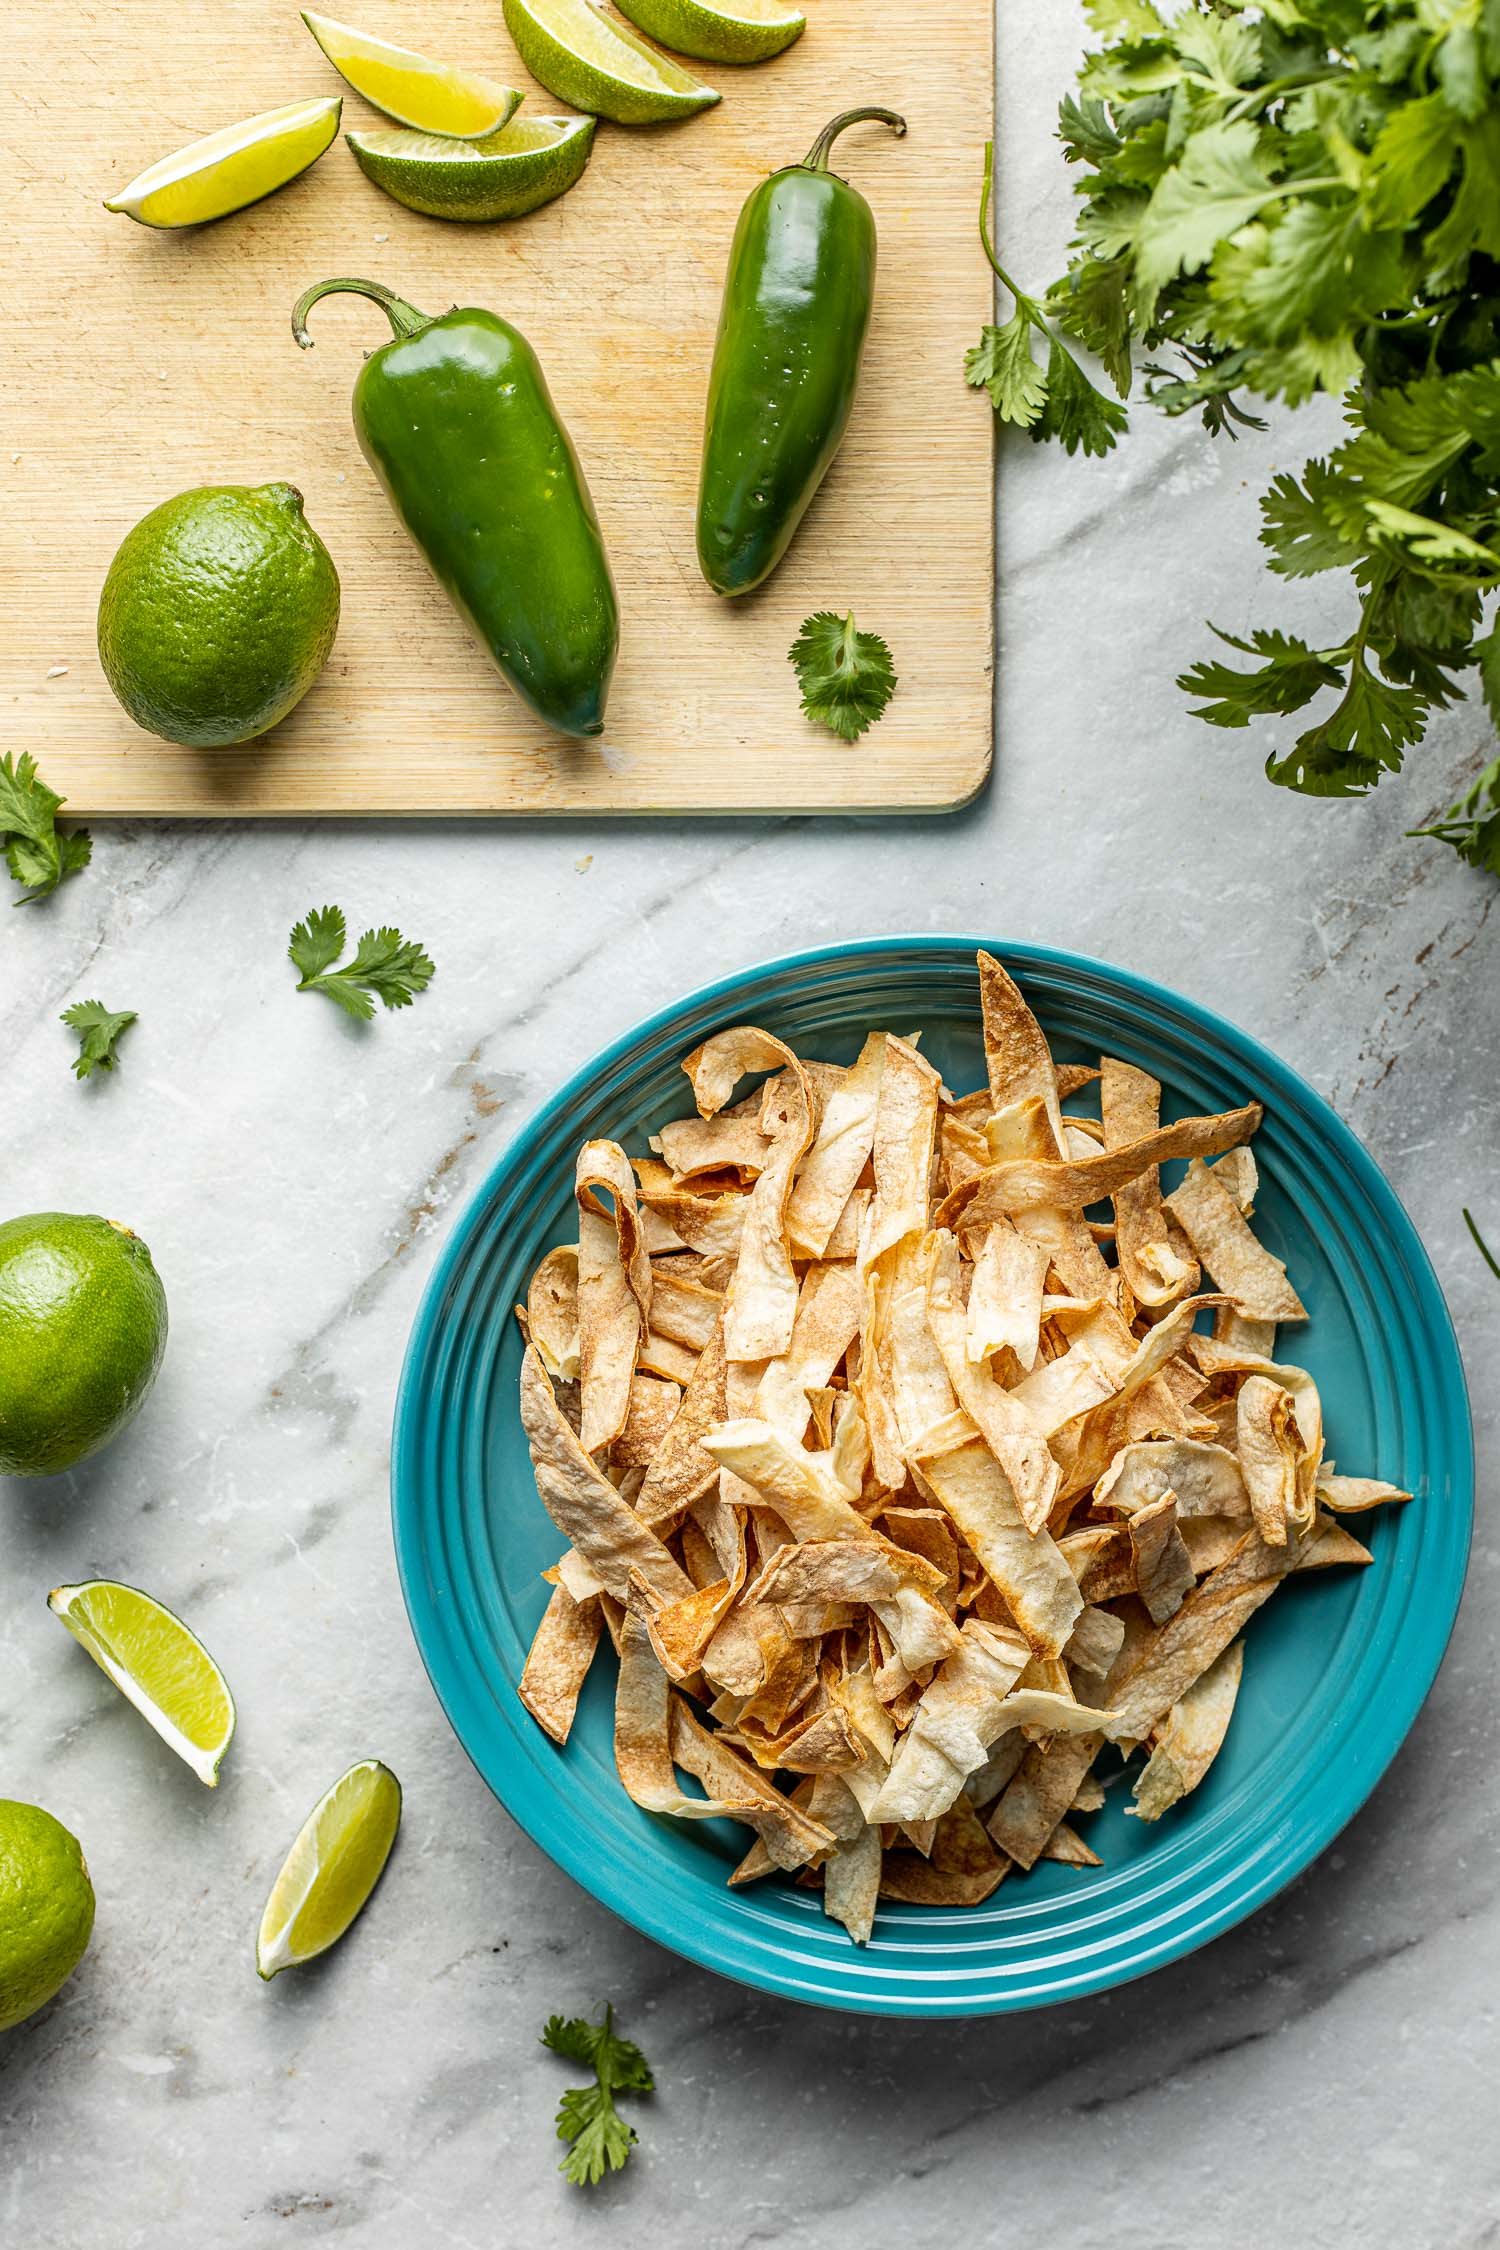 cooking scene with green limes, green peppers, green herbs, turquoise bowl of homemade tortilla chips wood cutting board, marble work surface